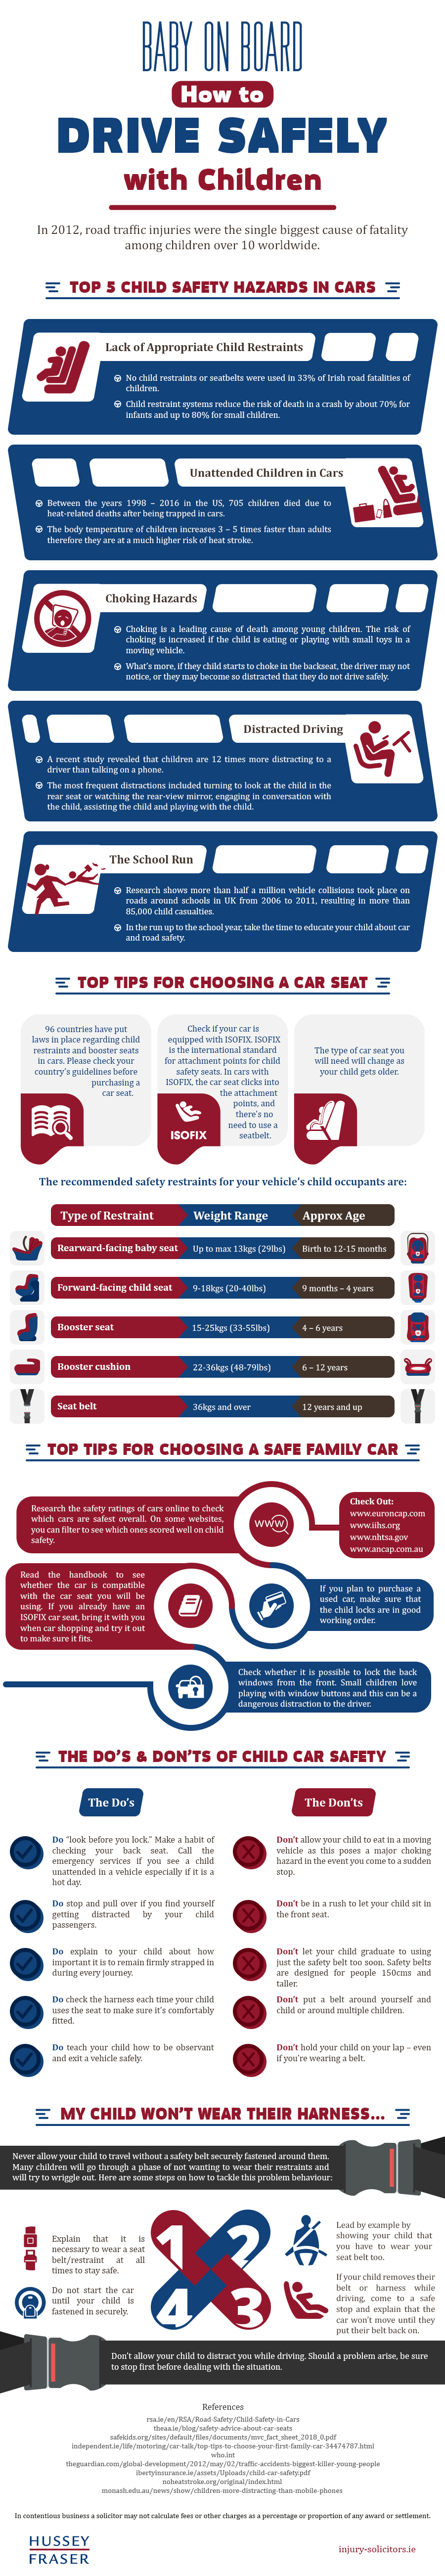 baby-on-board-how-to-drive-safely-with-children-infographic.jpg